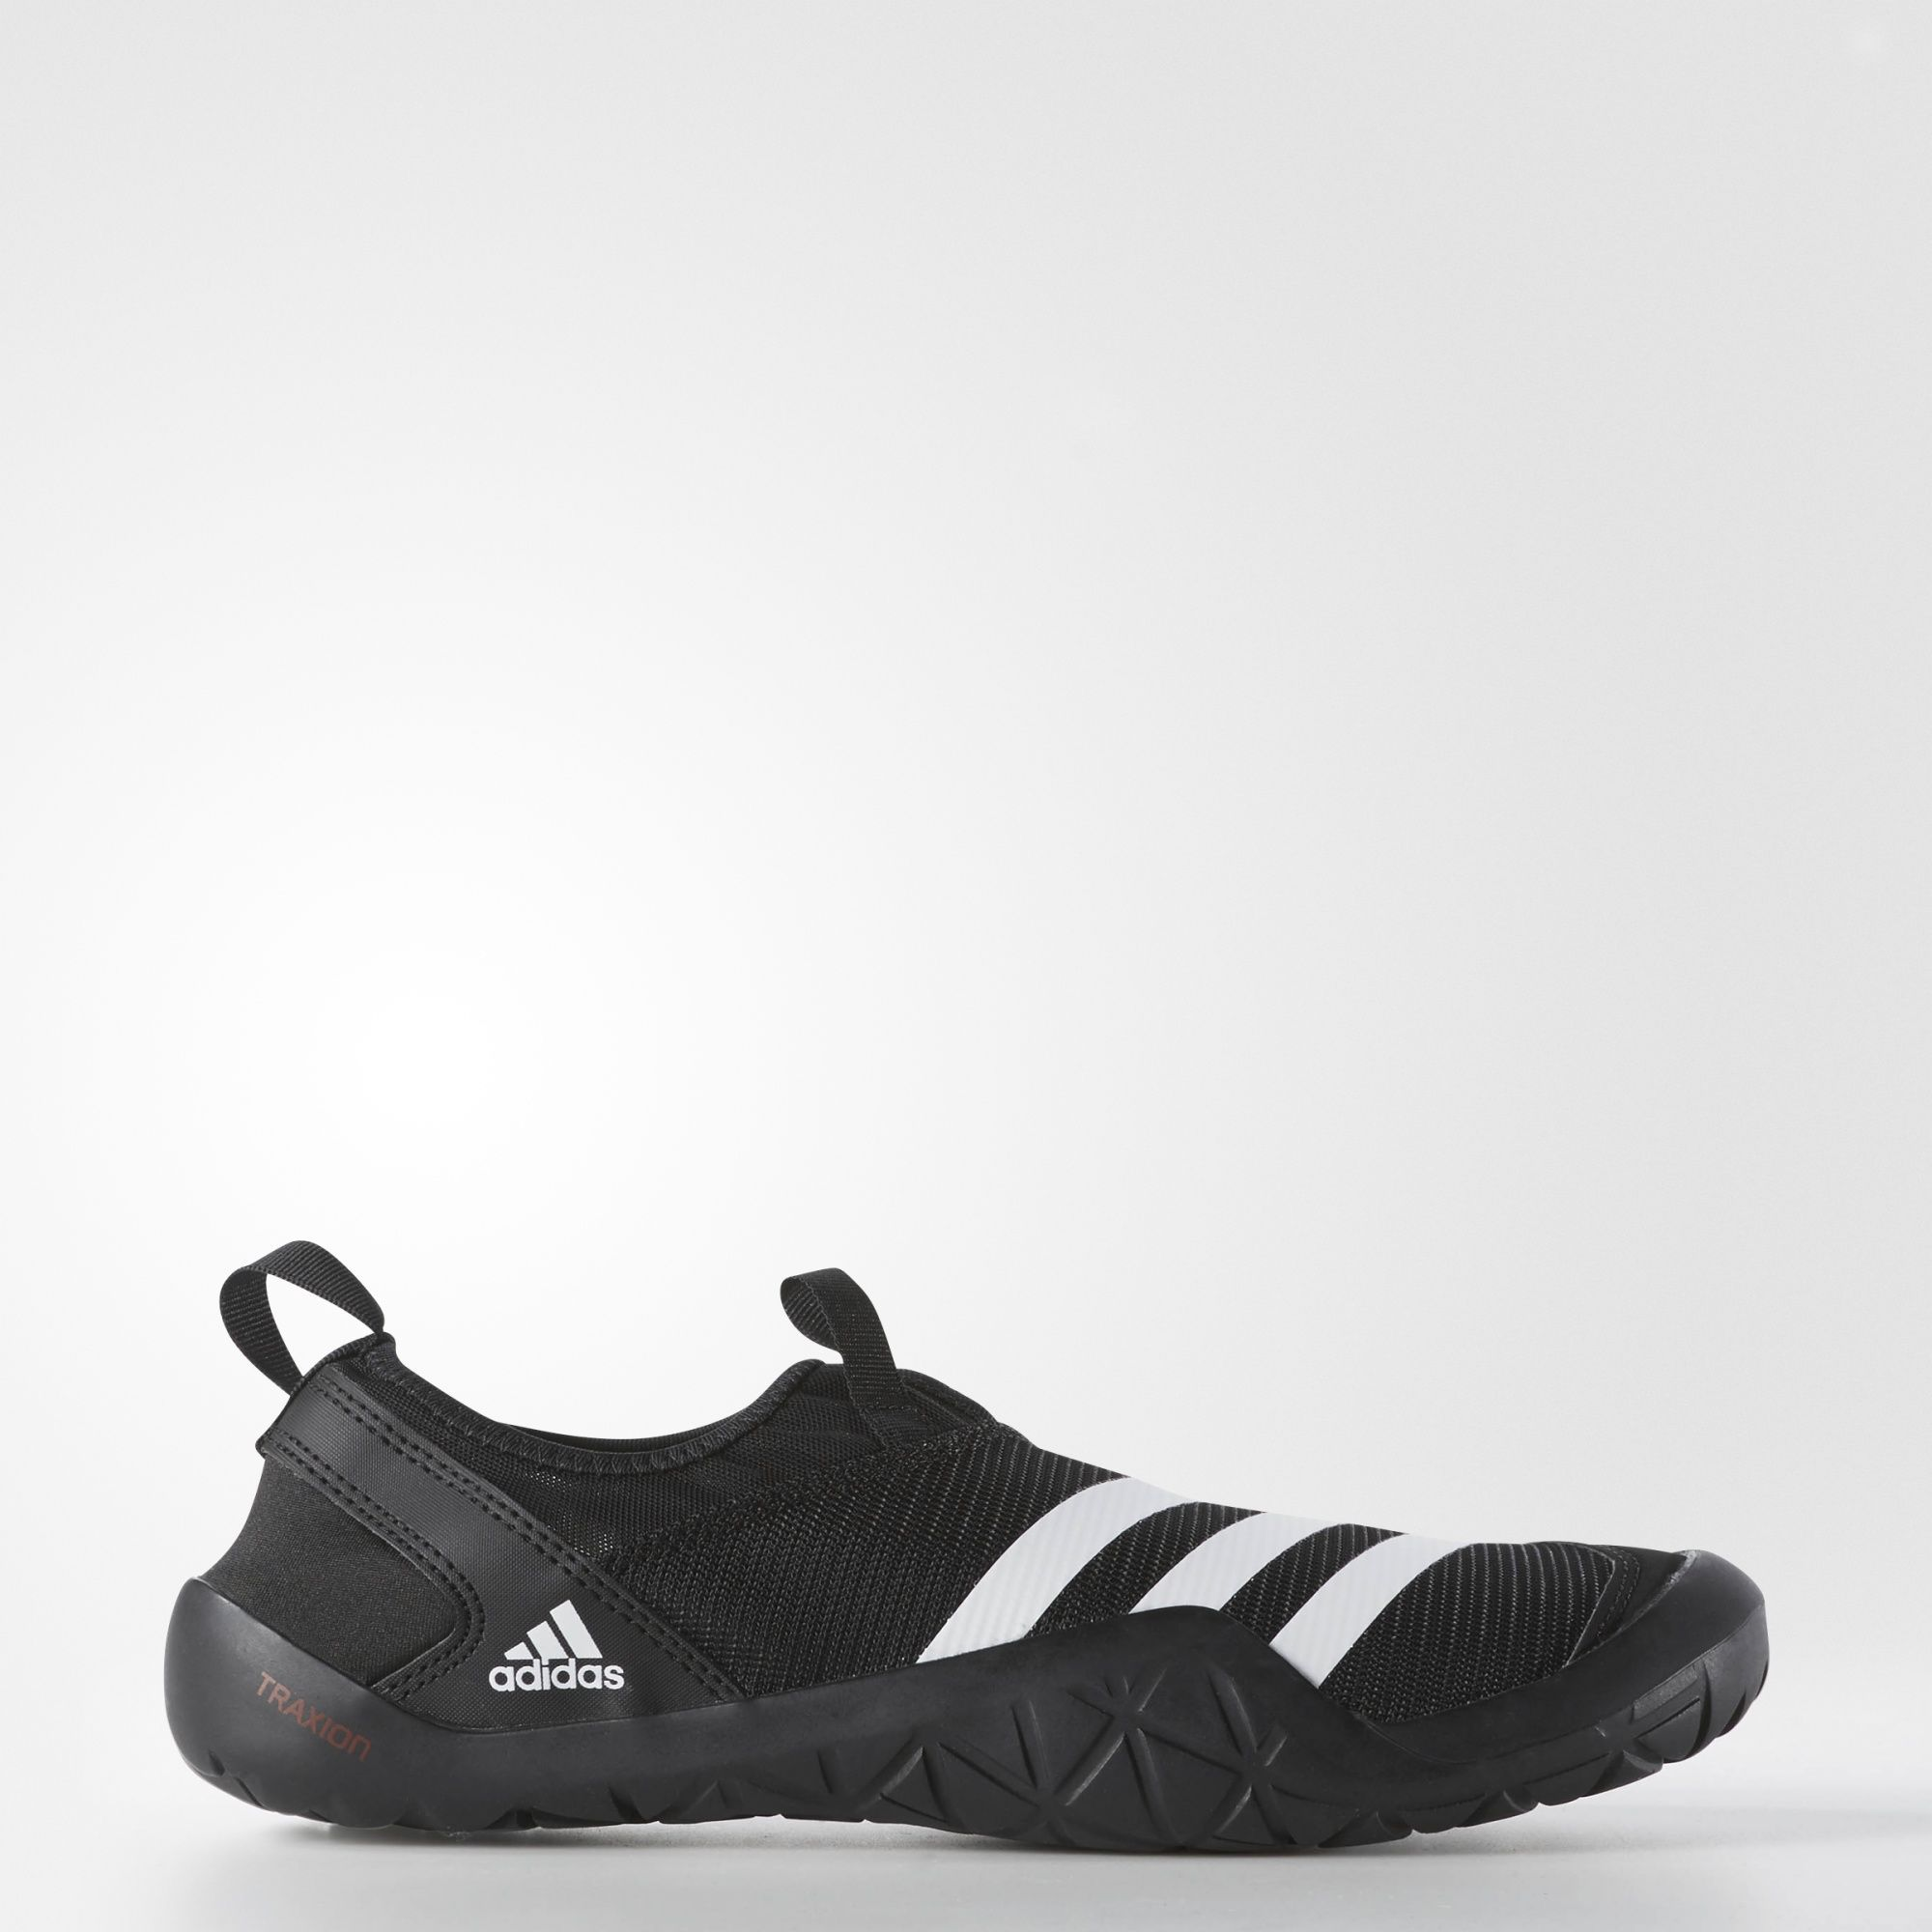 adidas Climacool Jawpaw Slip-On Shoes - Black